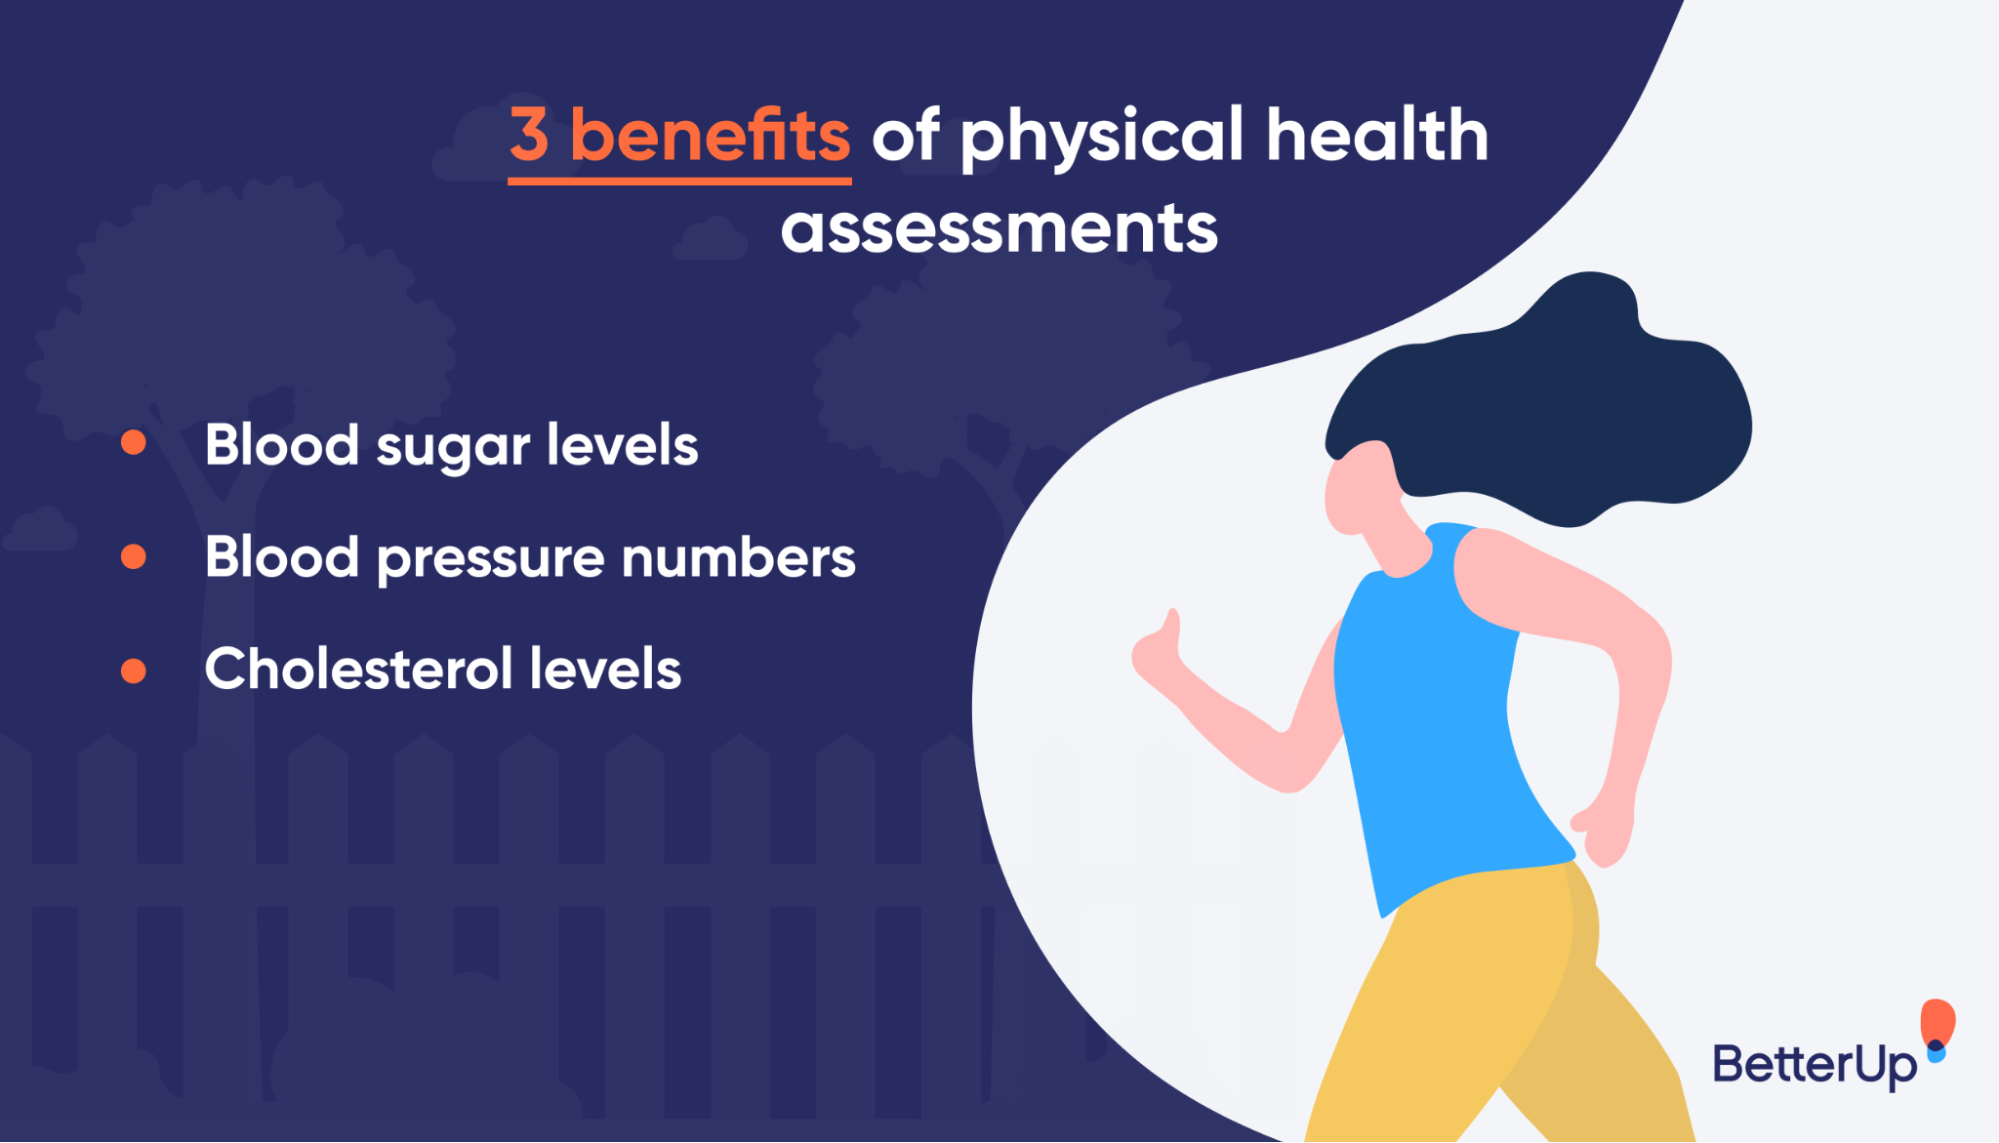 3-benefits-of-physical-health-assessments